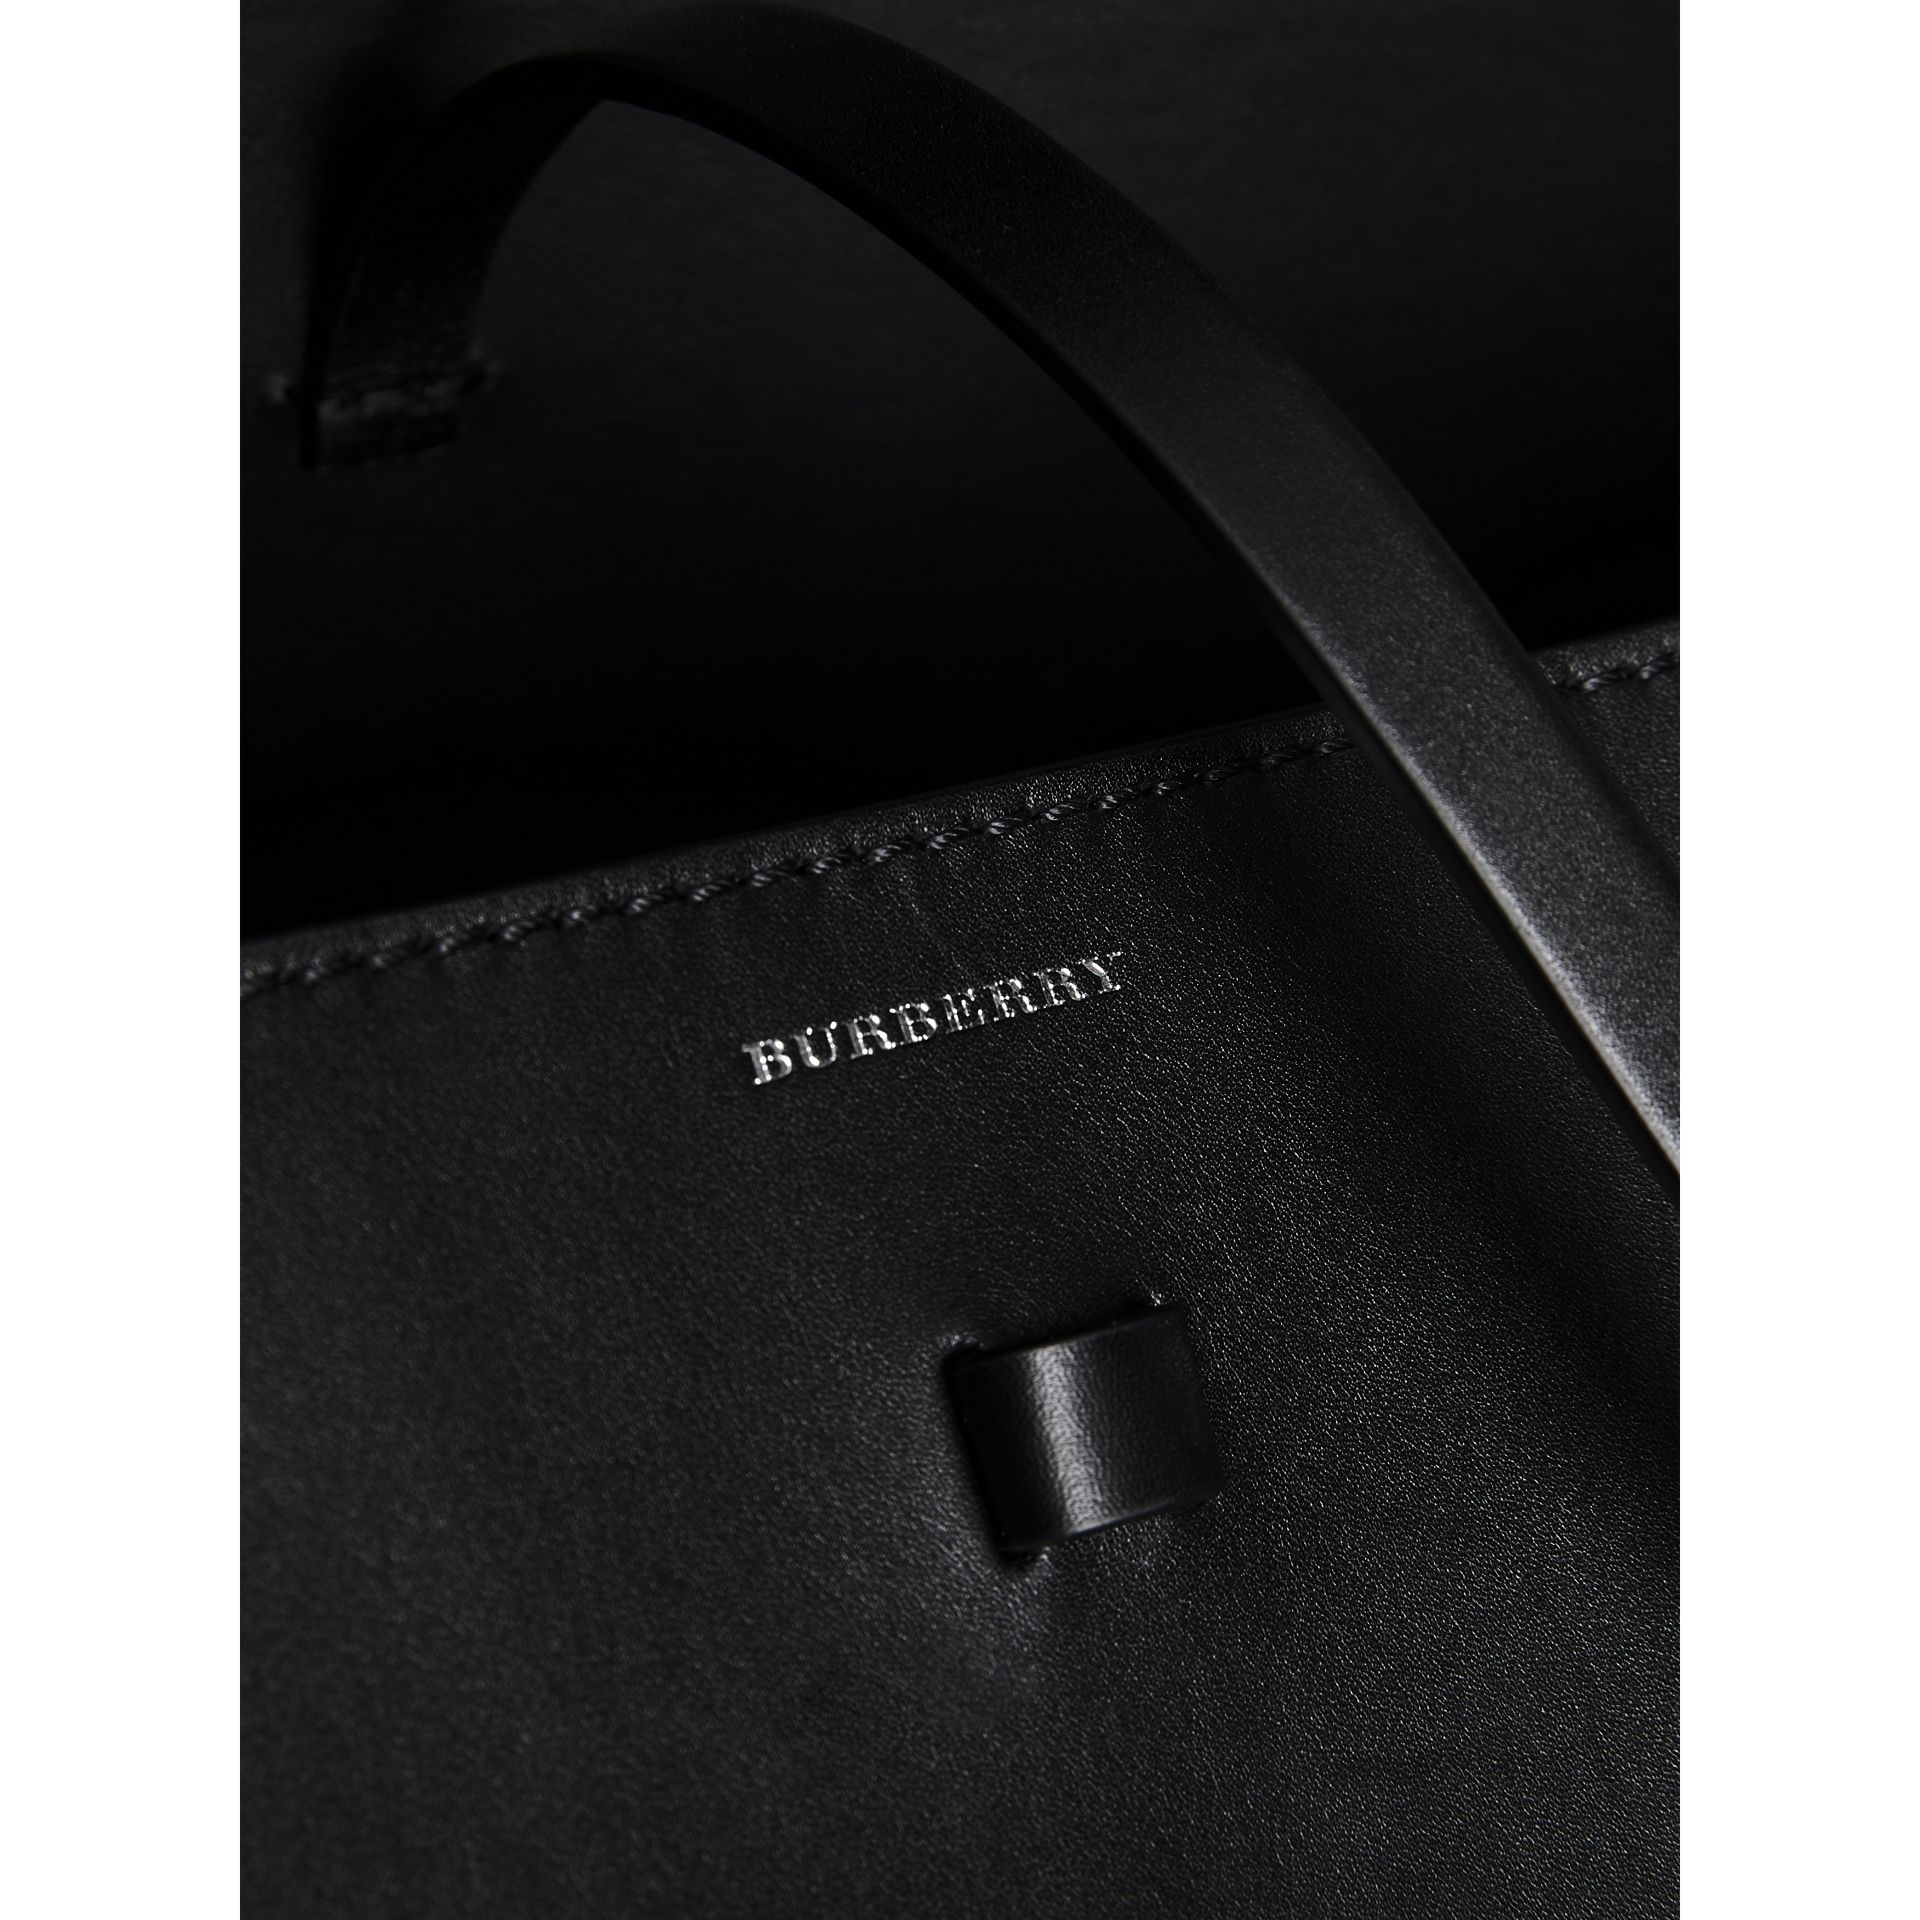 The Large Cotton Linen and Leather Bucket Bag in Black - Women | Burberry Canada - gallery image 1